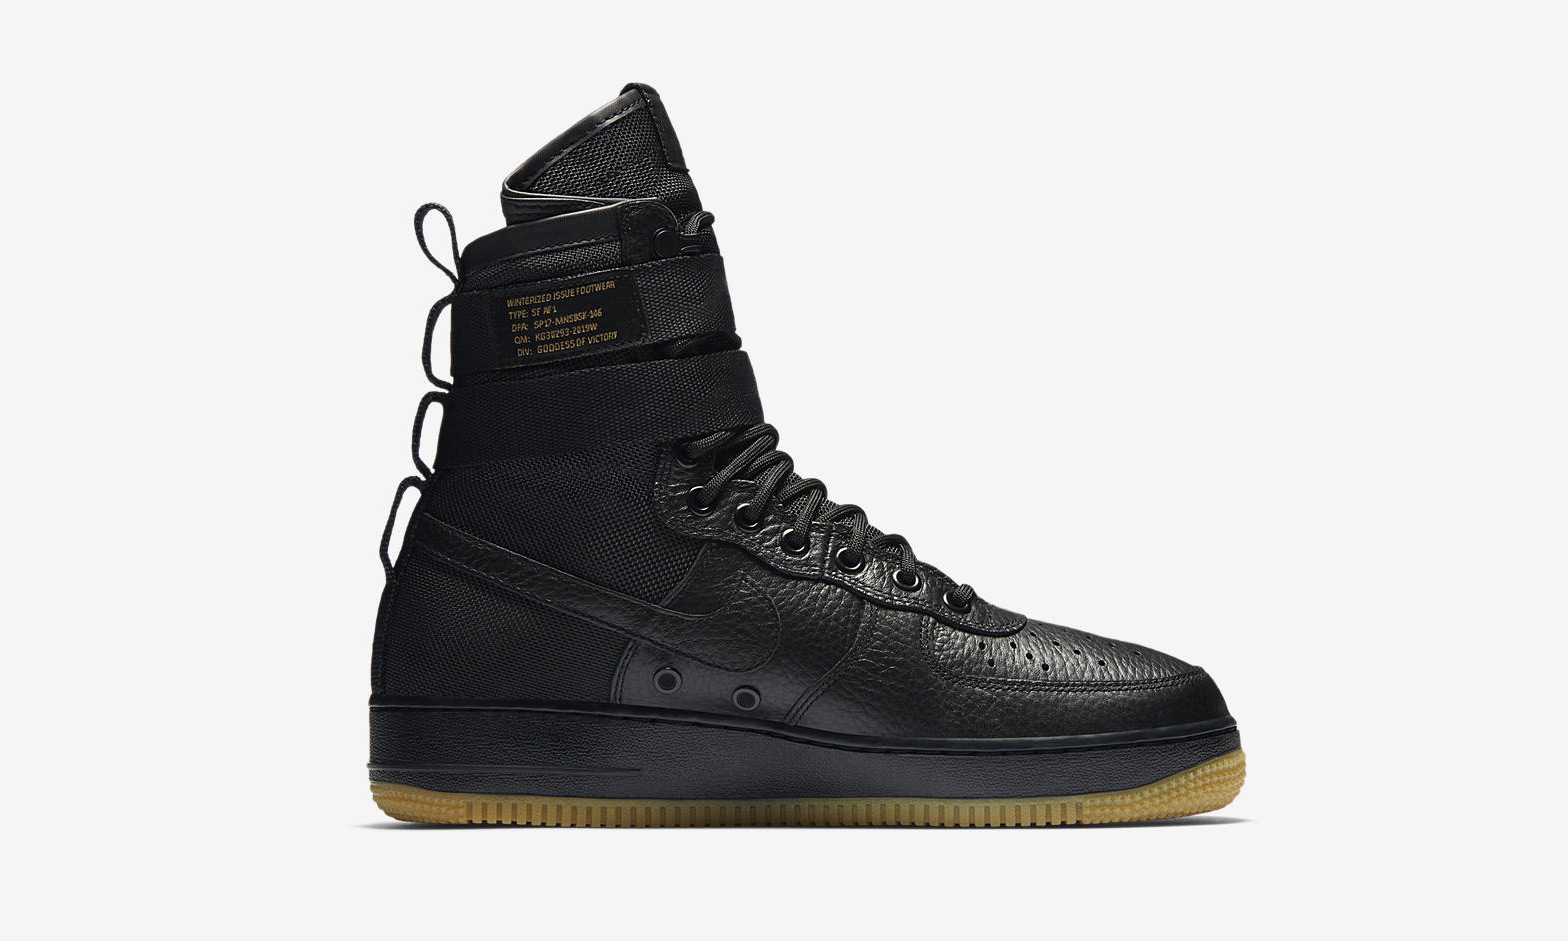 nike-special-forces-air-force-1-new-colors-5